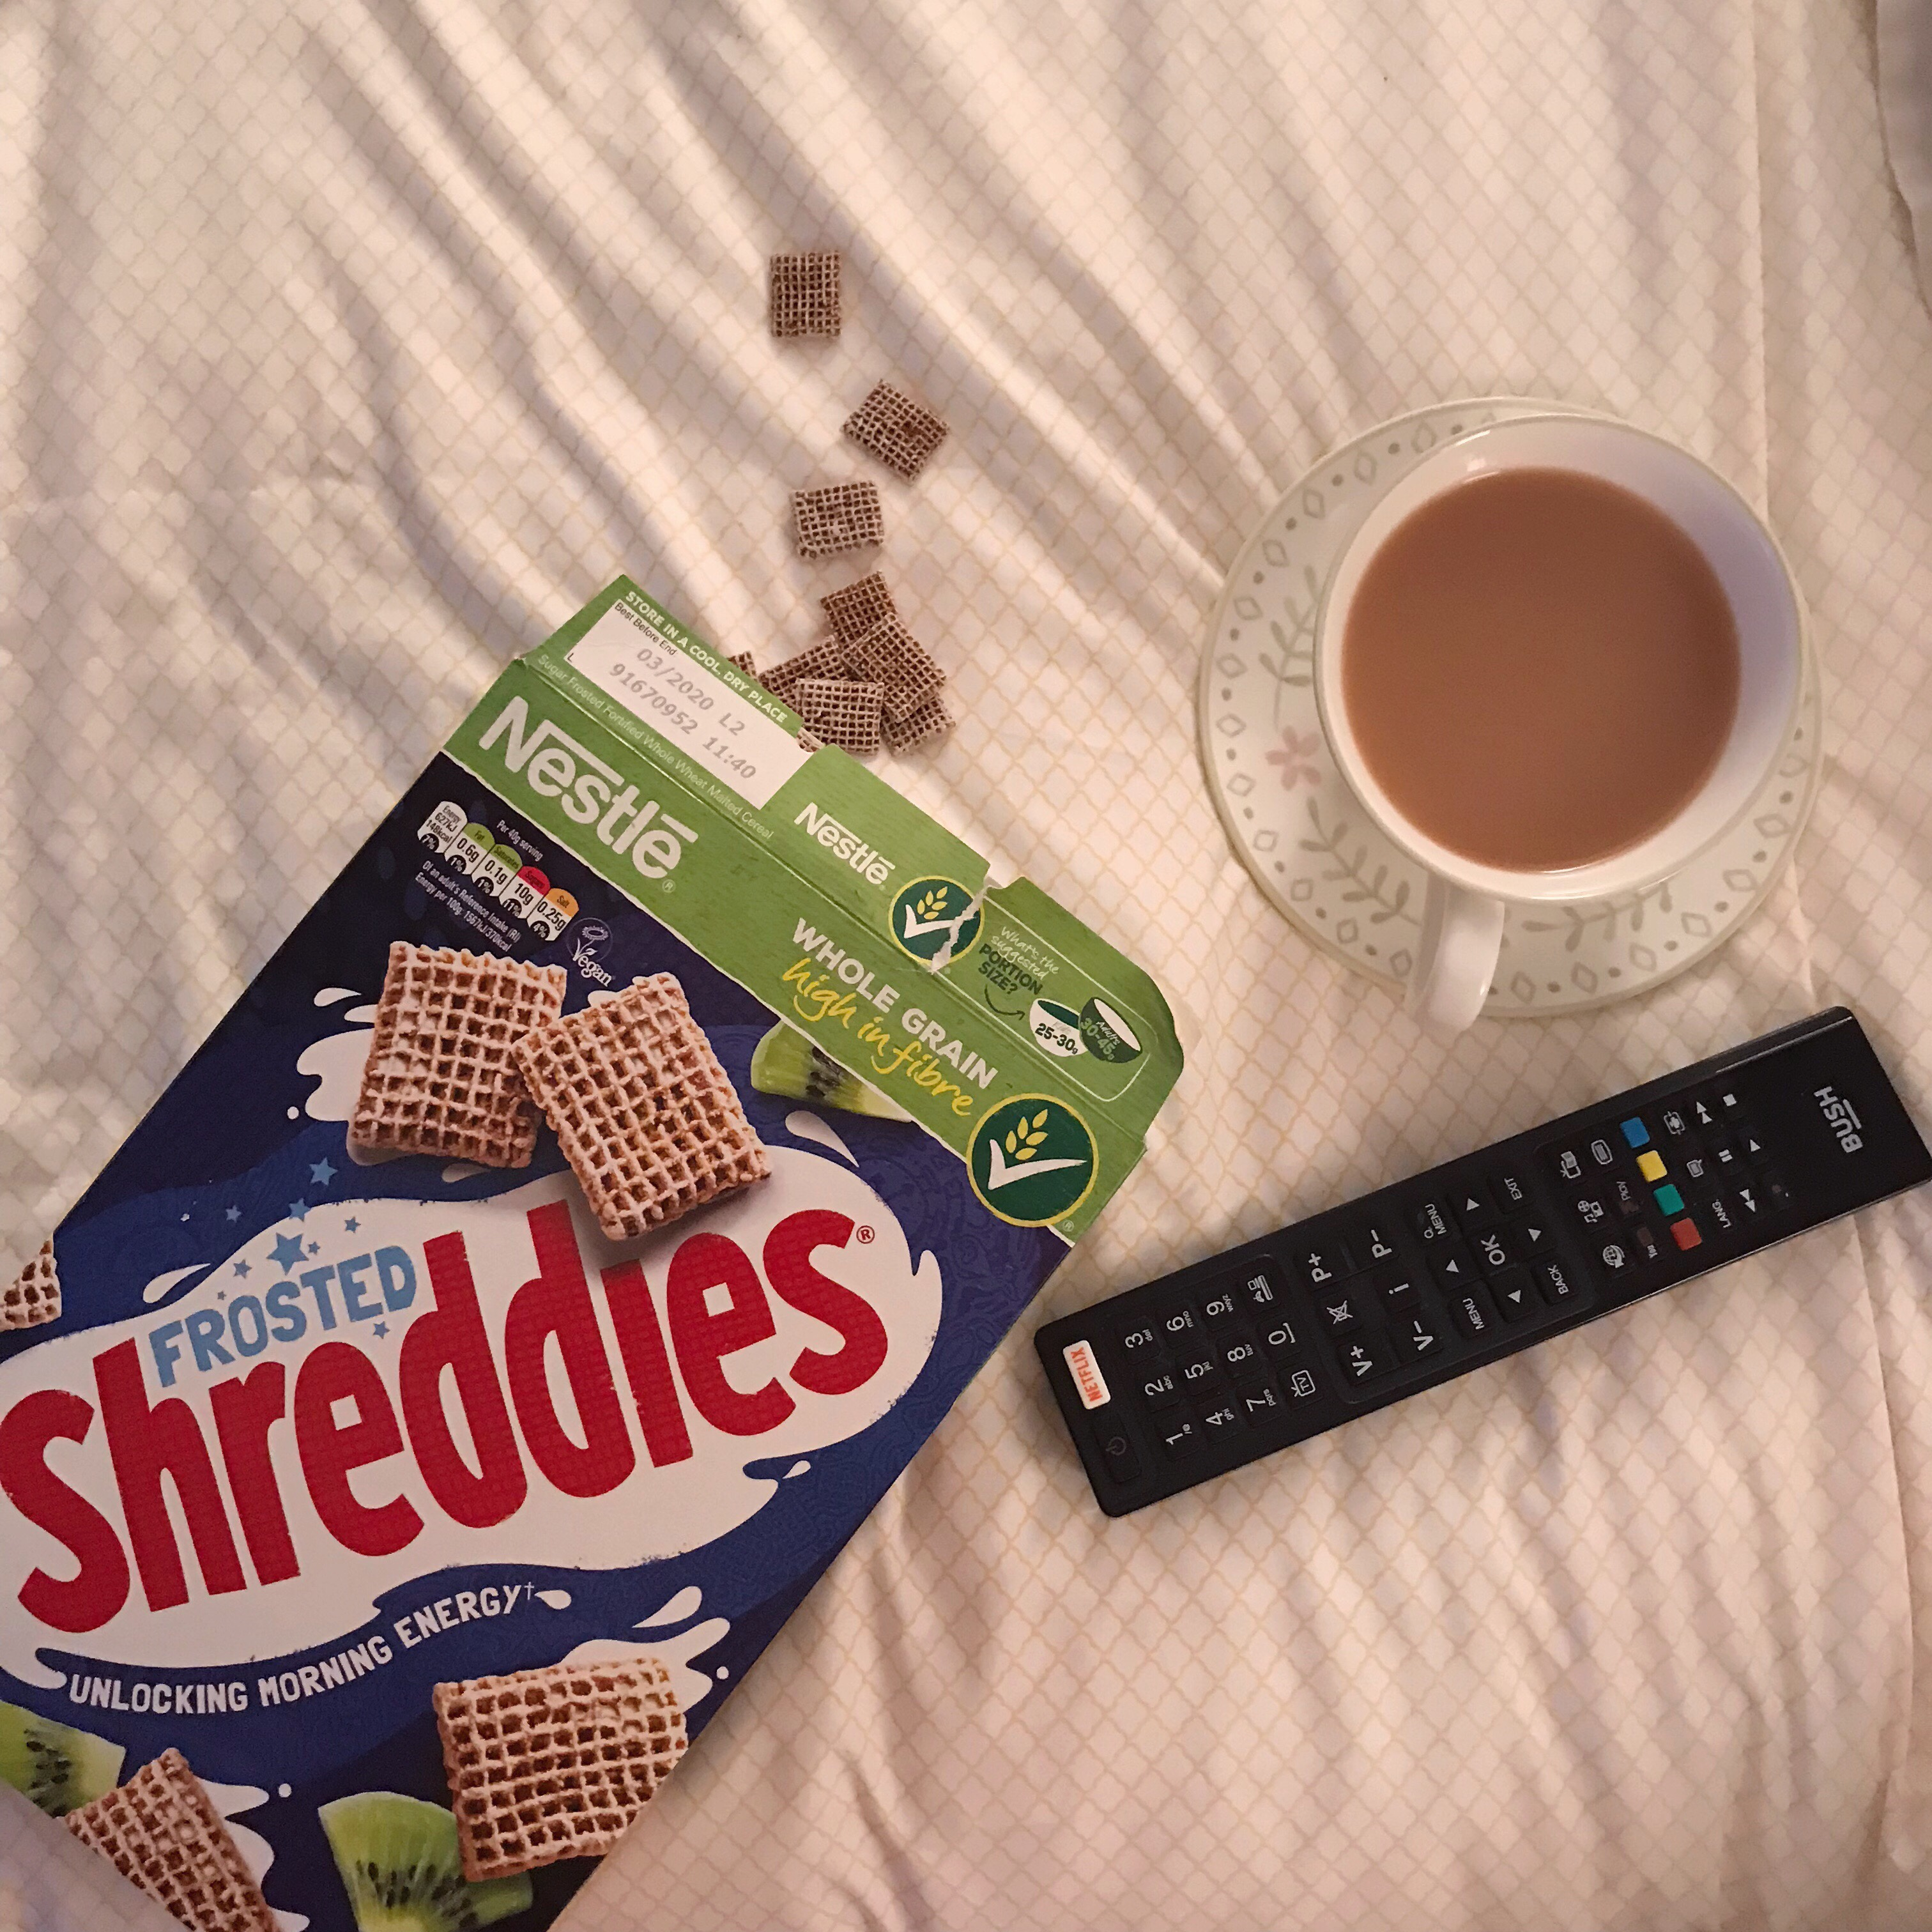 snacks in bed